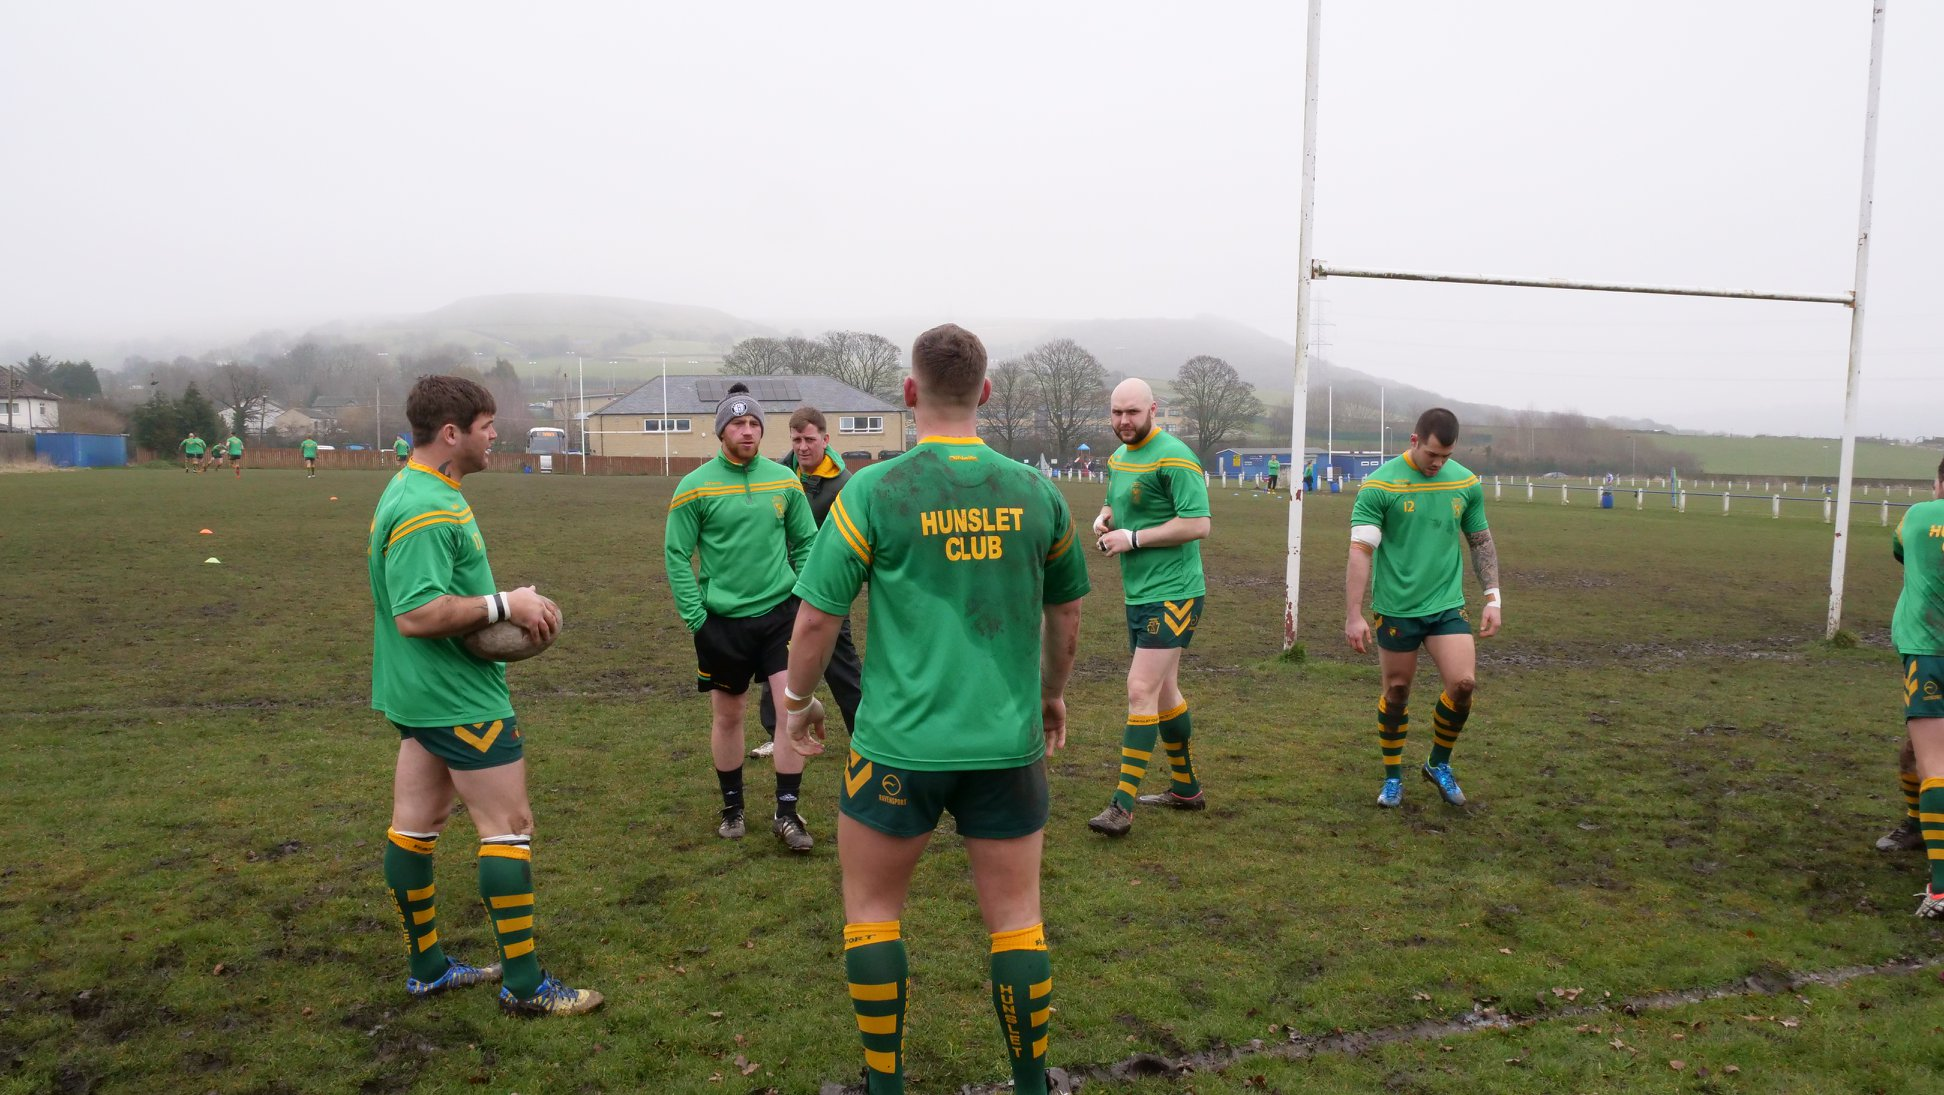 You can watch Hunslet Club parkside in action by following the link at the end of this article.